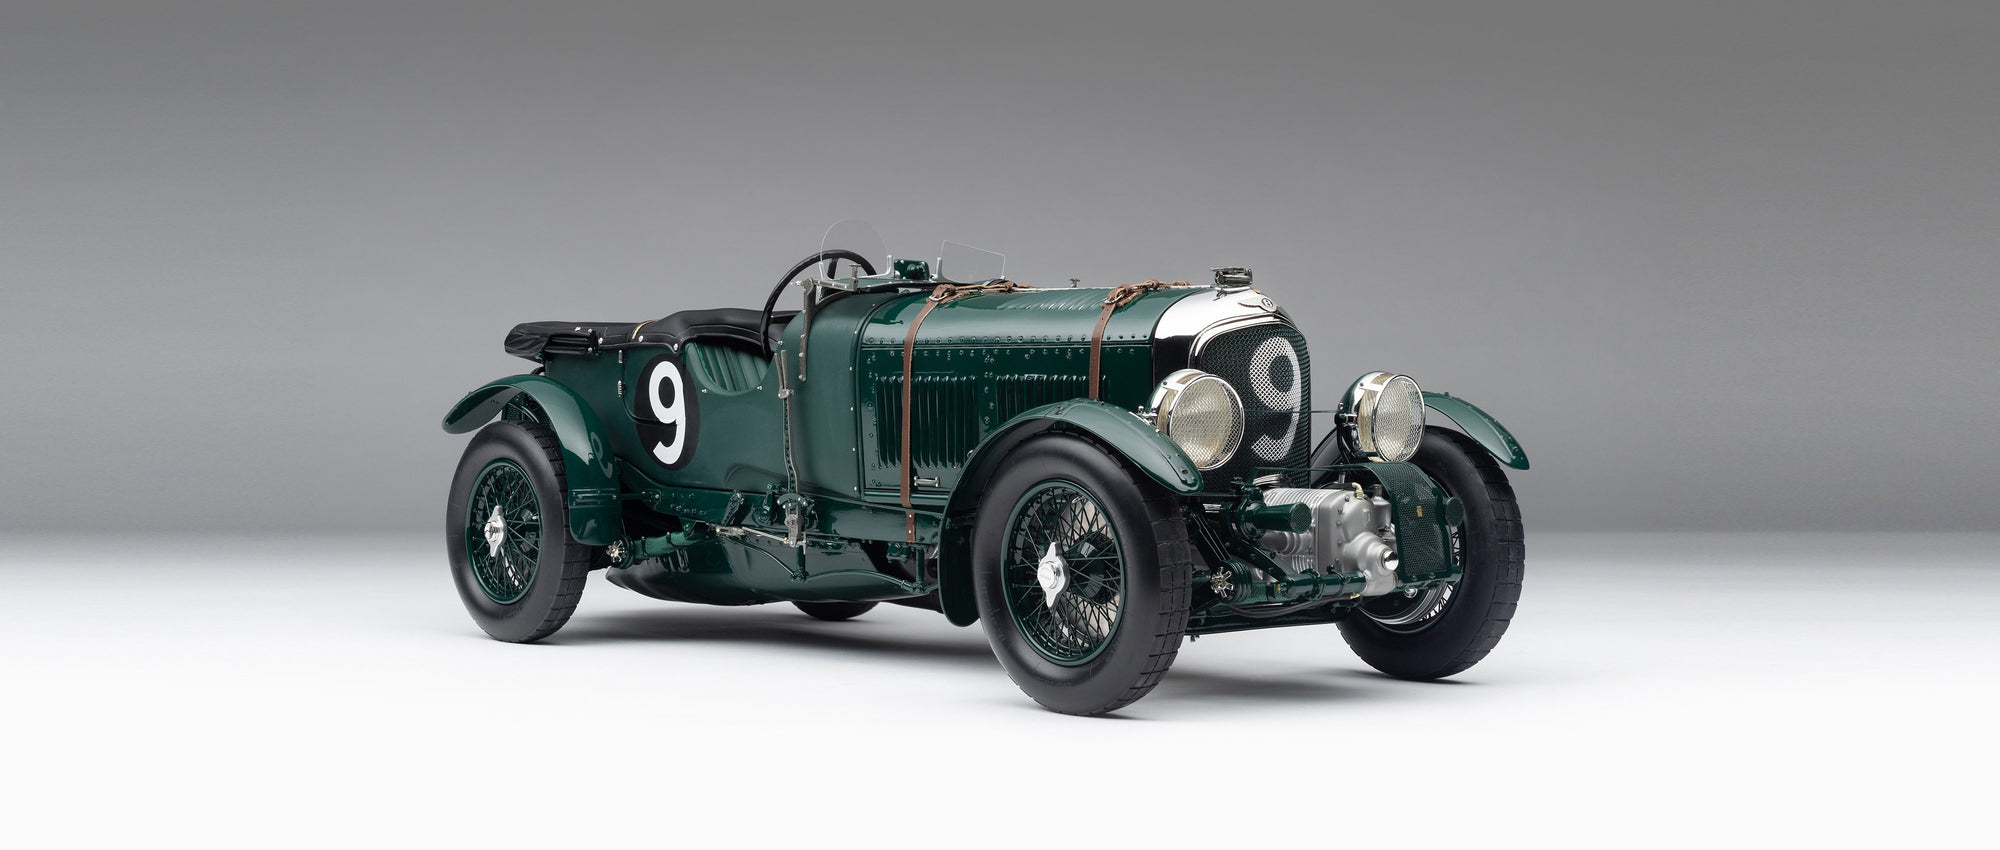 Bentley Blower - 1929 Le Mans 2nd Place